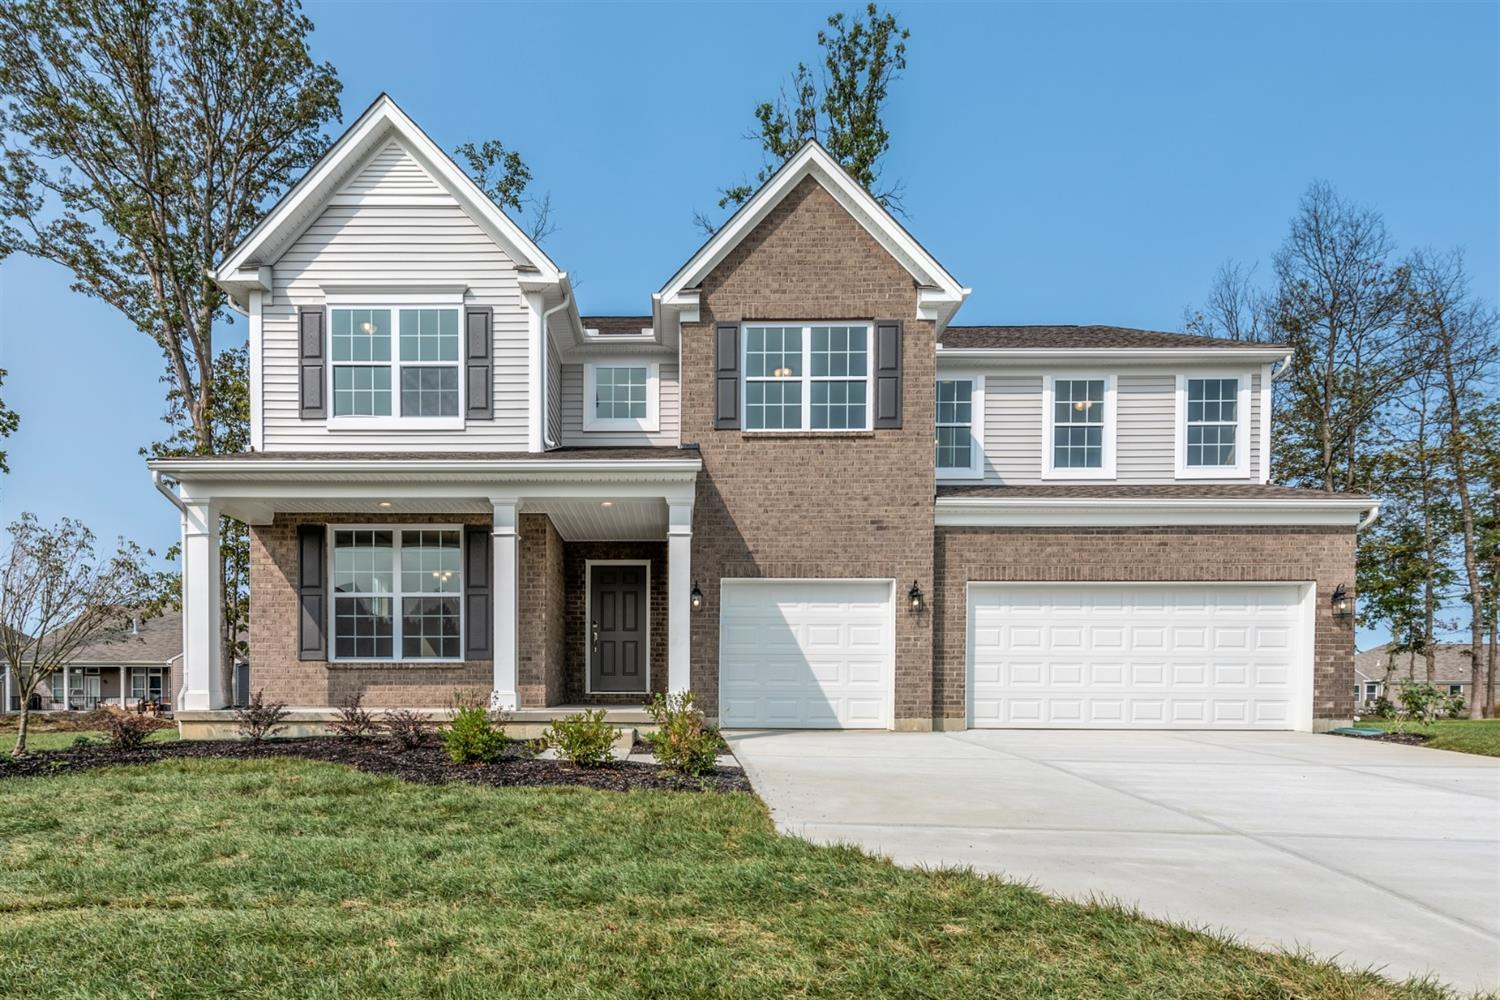 Property for sale at 1769 Red Clover Drive Unit: 385, Turtle Creek Twp,  Ohio 45036